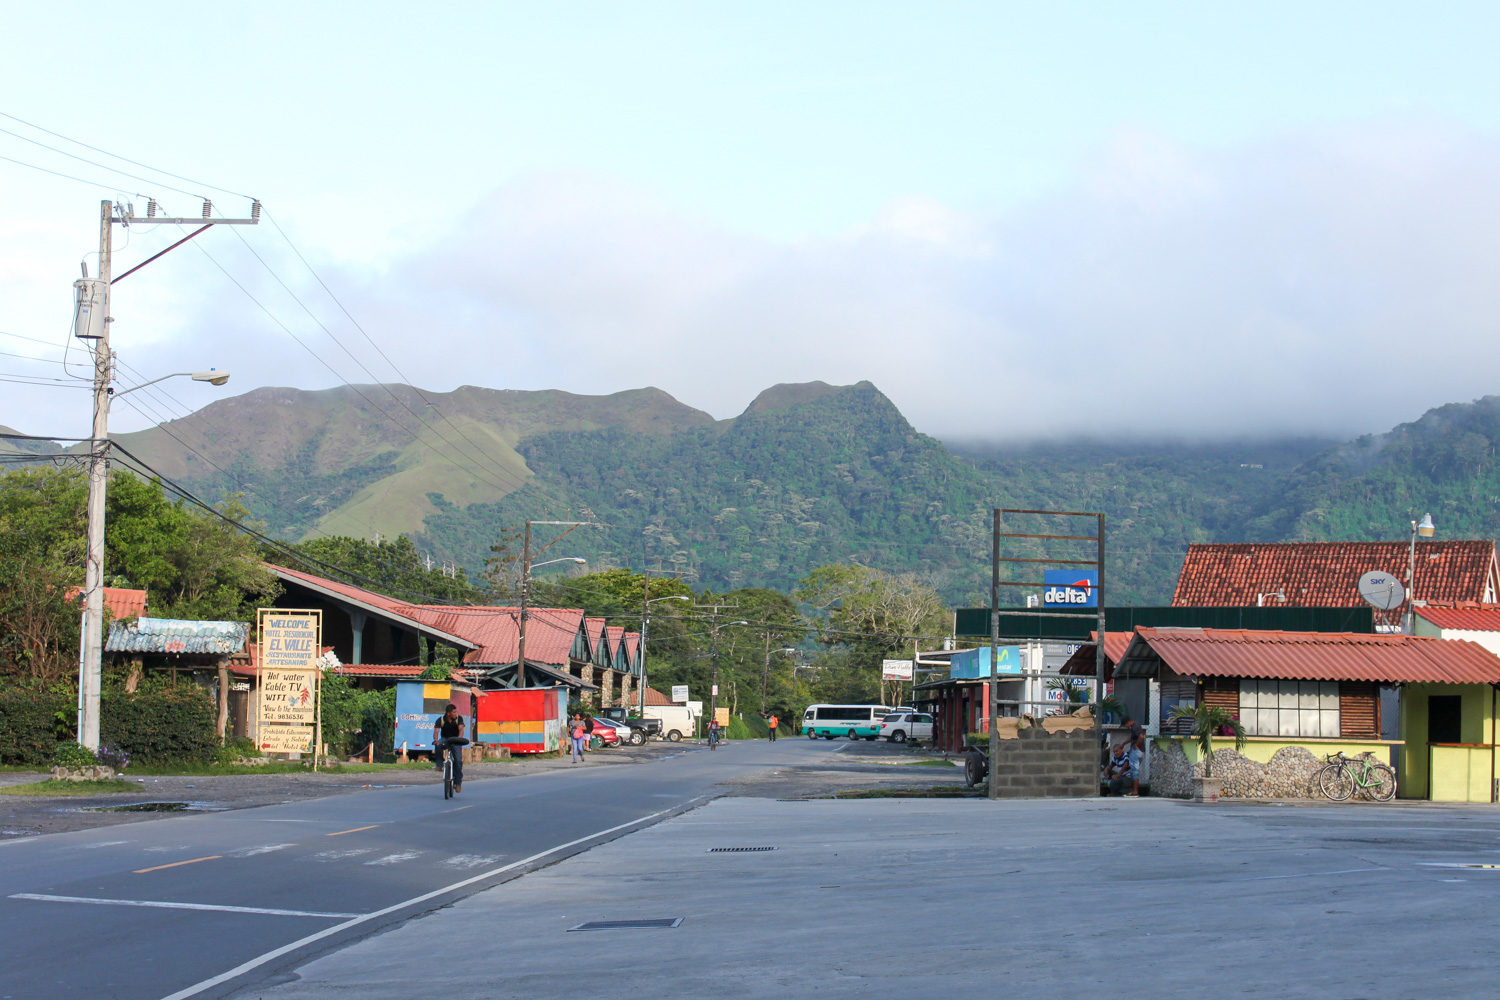 The town centre with la india dormida in the background. Spot her?